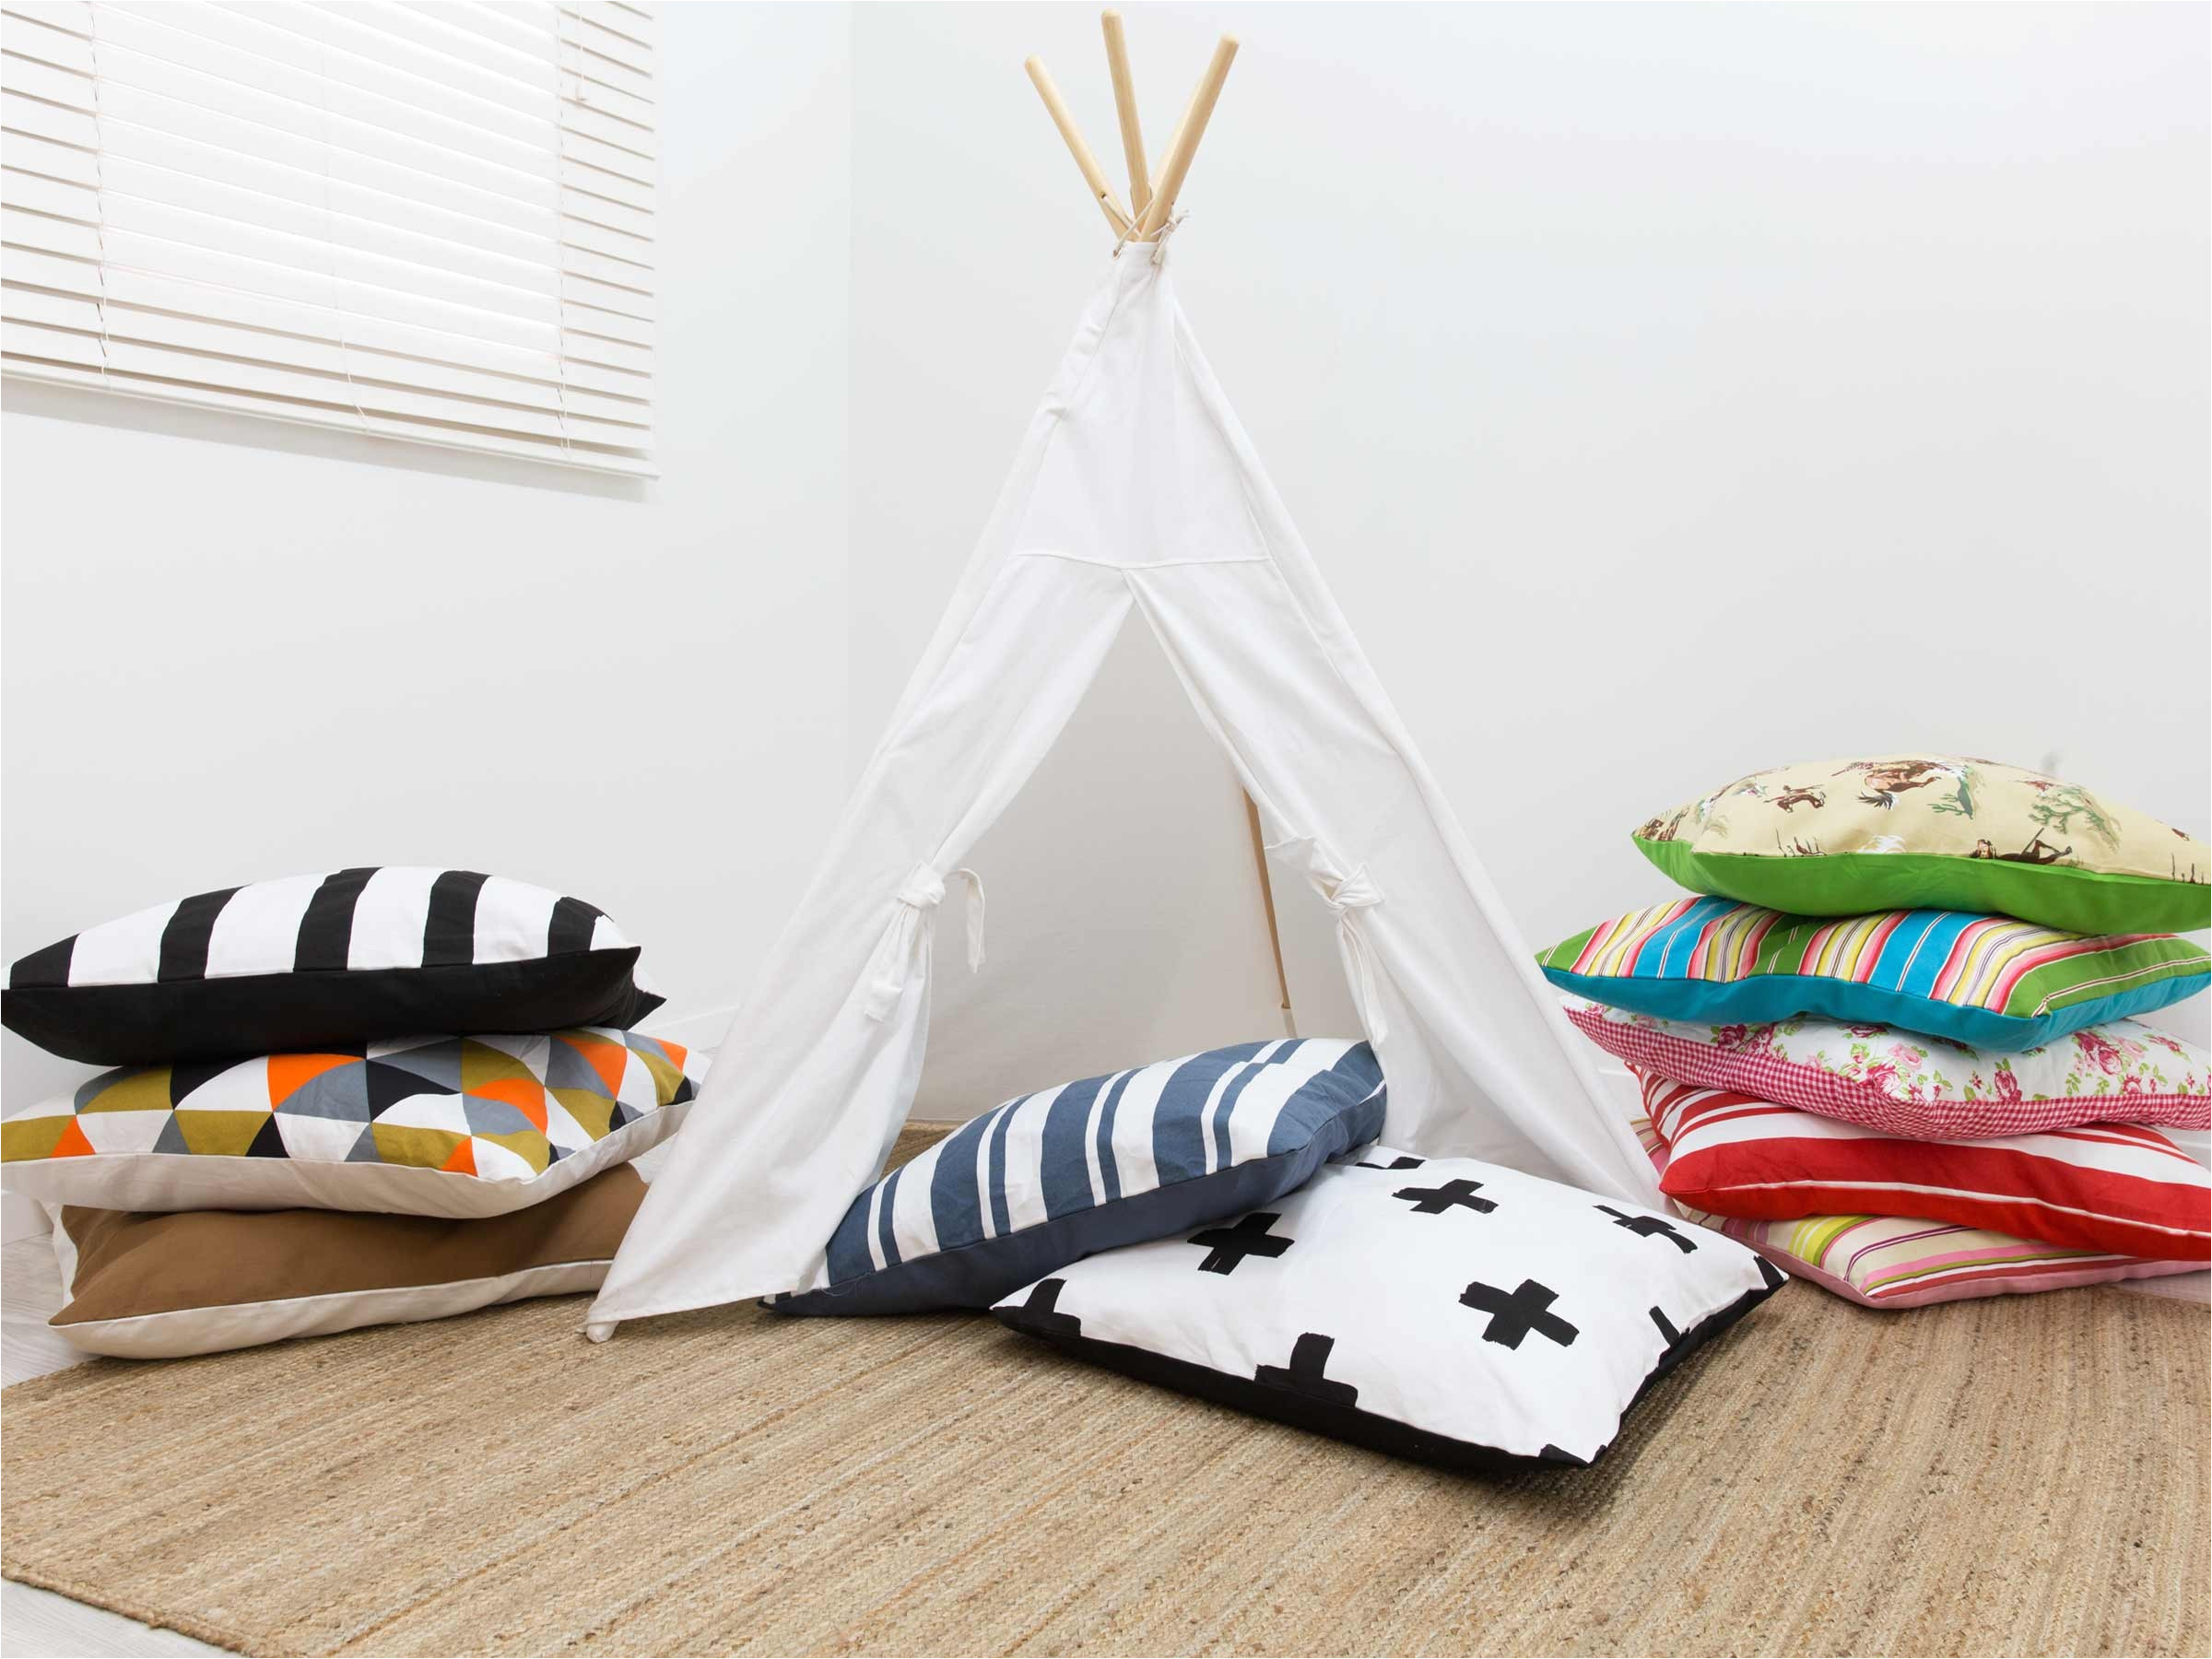 kids teepee cushions 5 out of 1 5 based on 76 ratings 76 user reviews